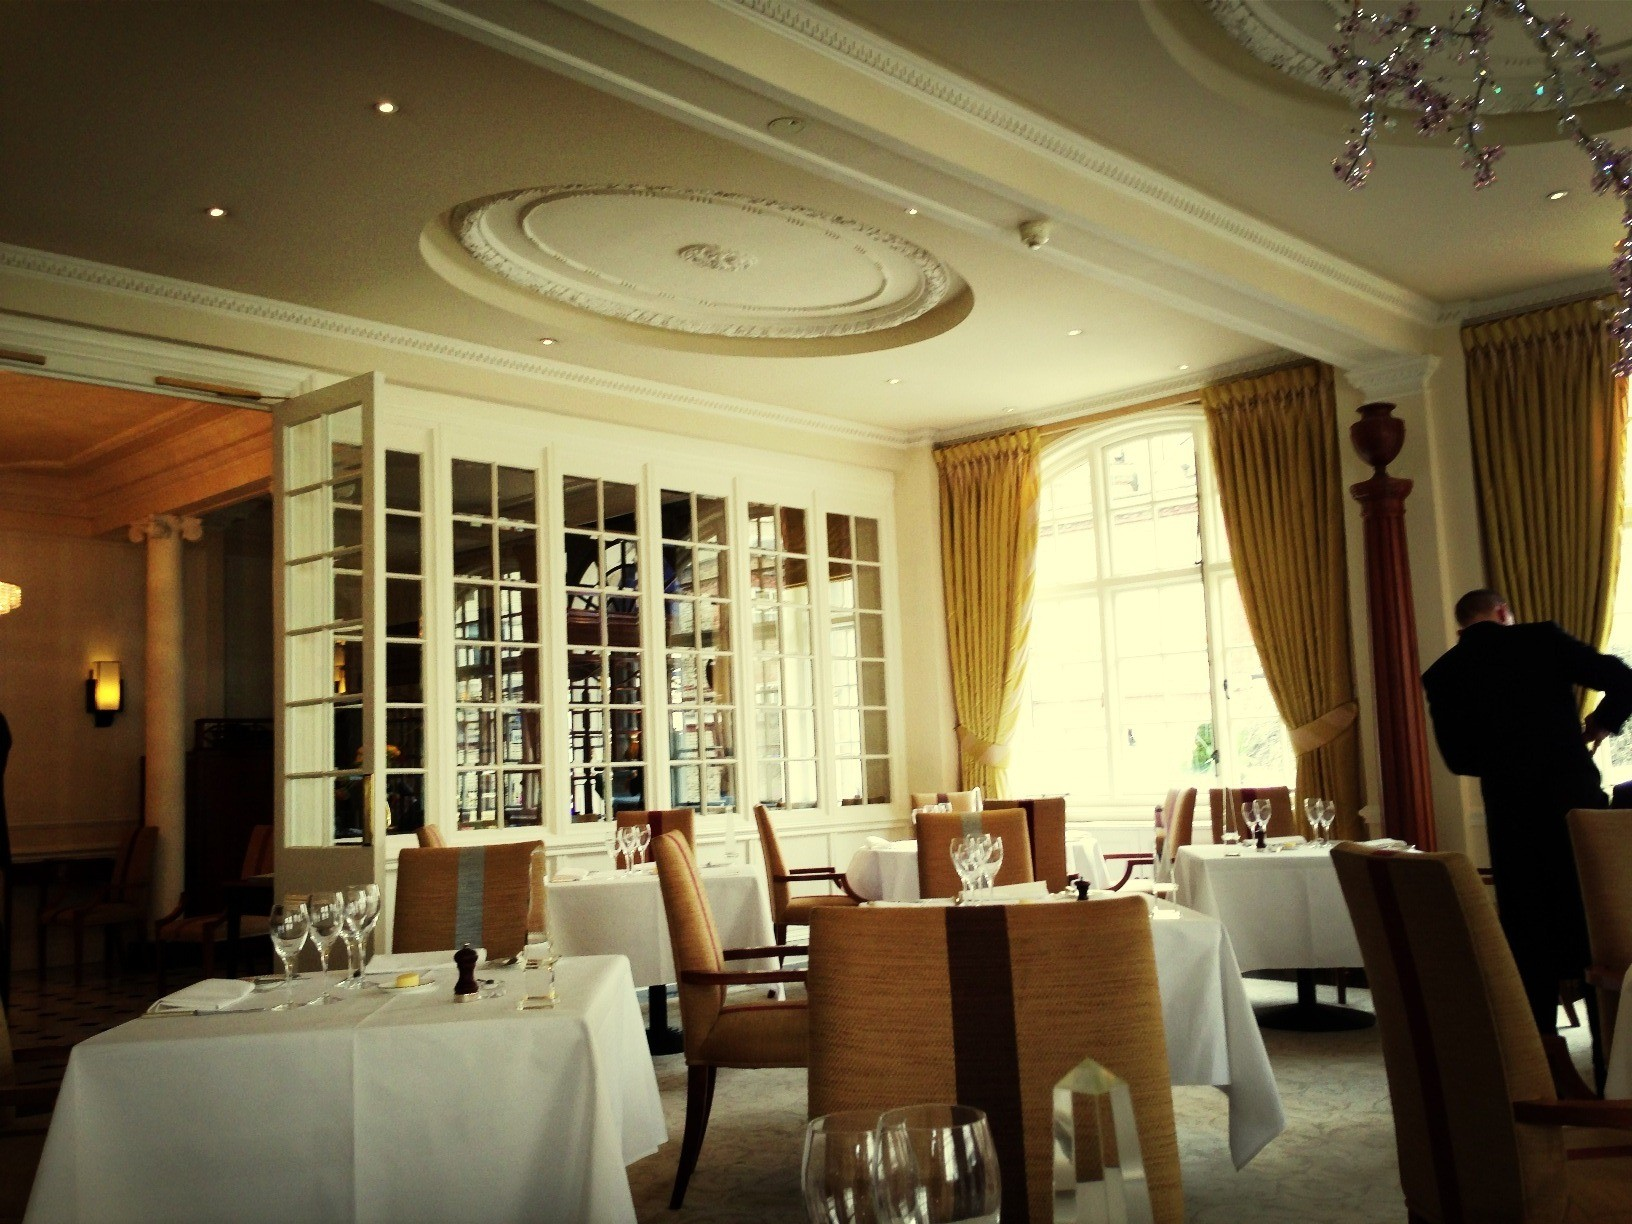 Dining Rooms At The Goring Hotel Inher30s